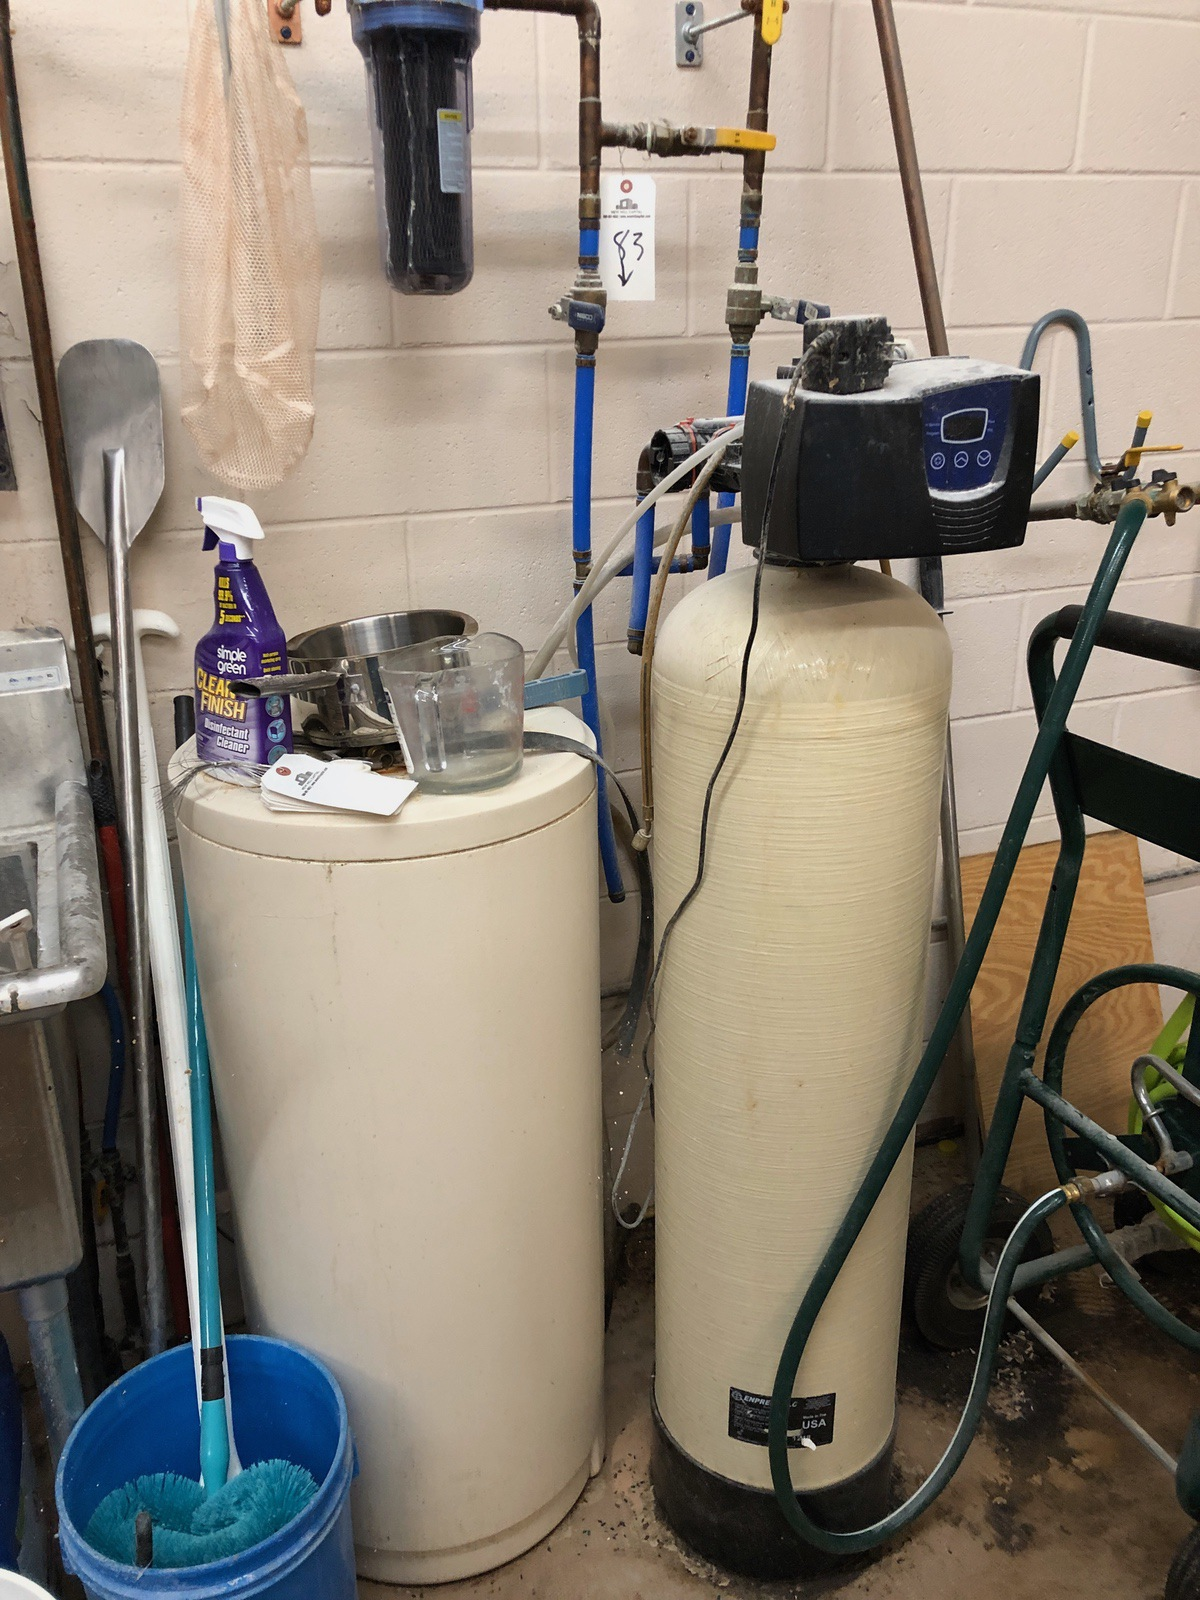 Lot 83 - Enpress Water Filtration System | Rig Fee: $100